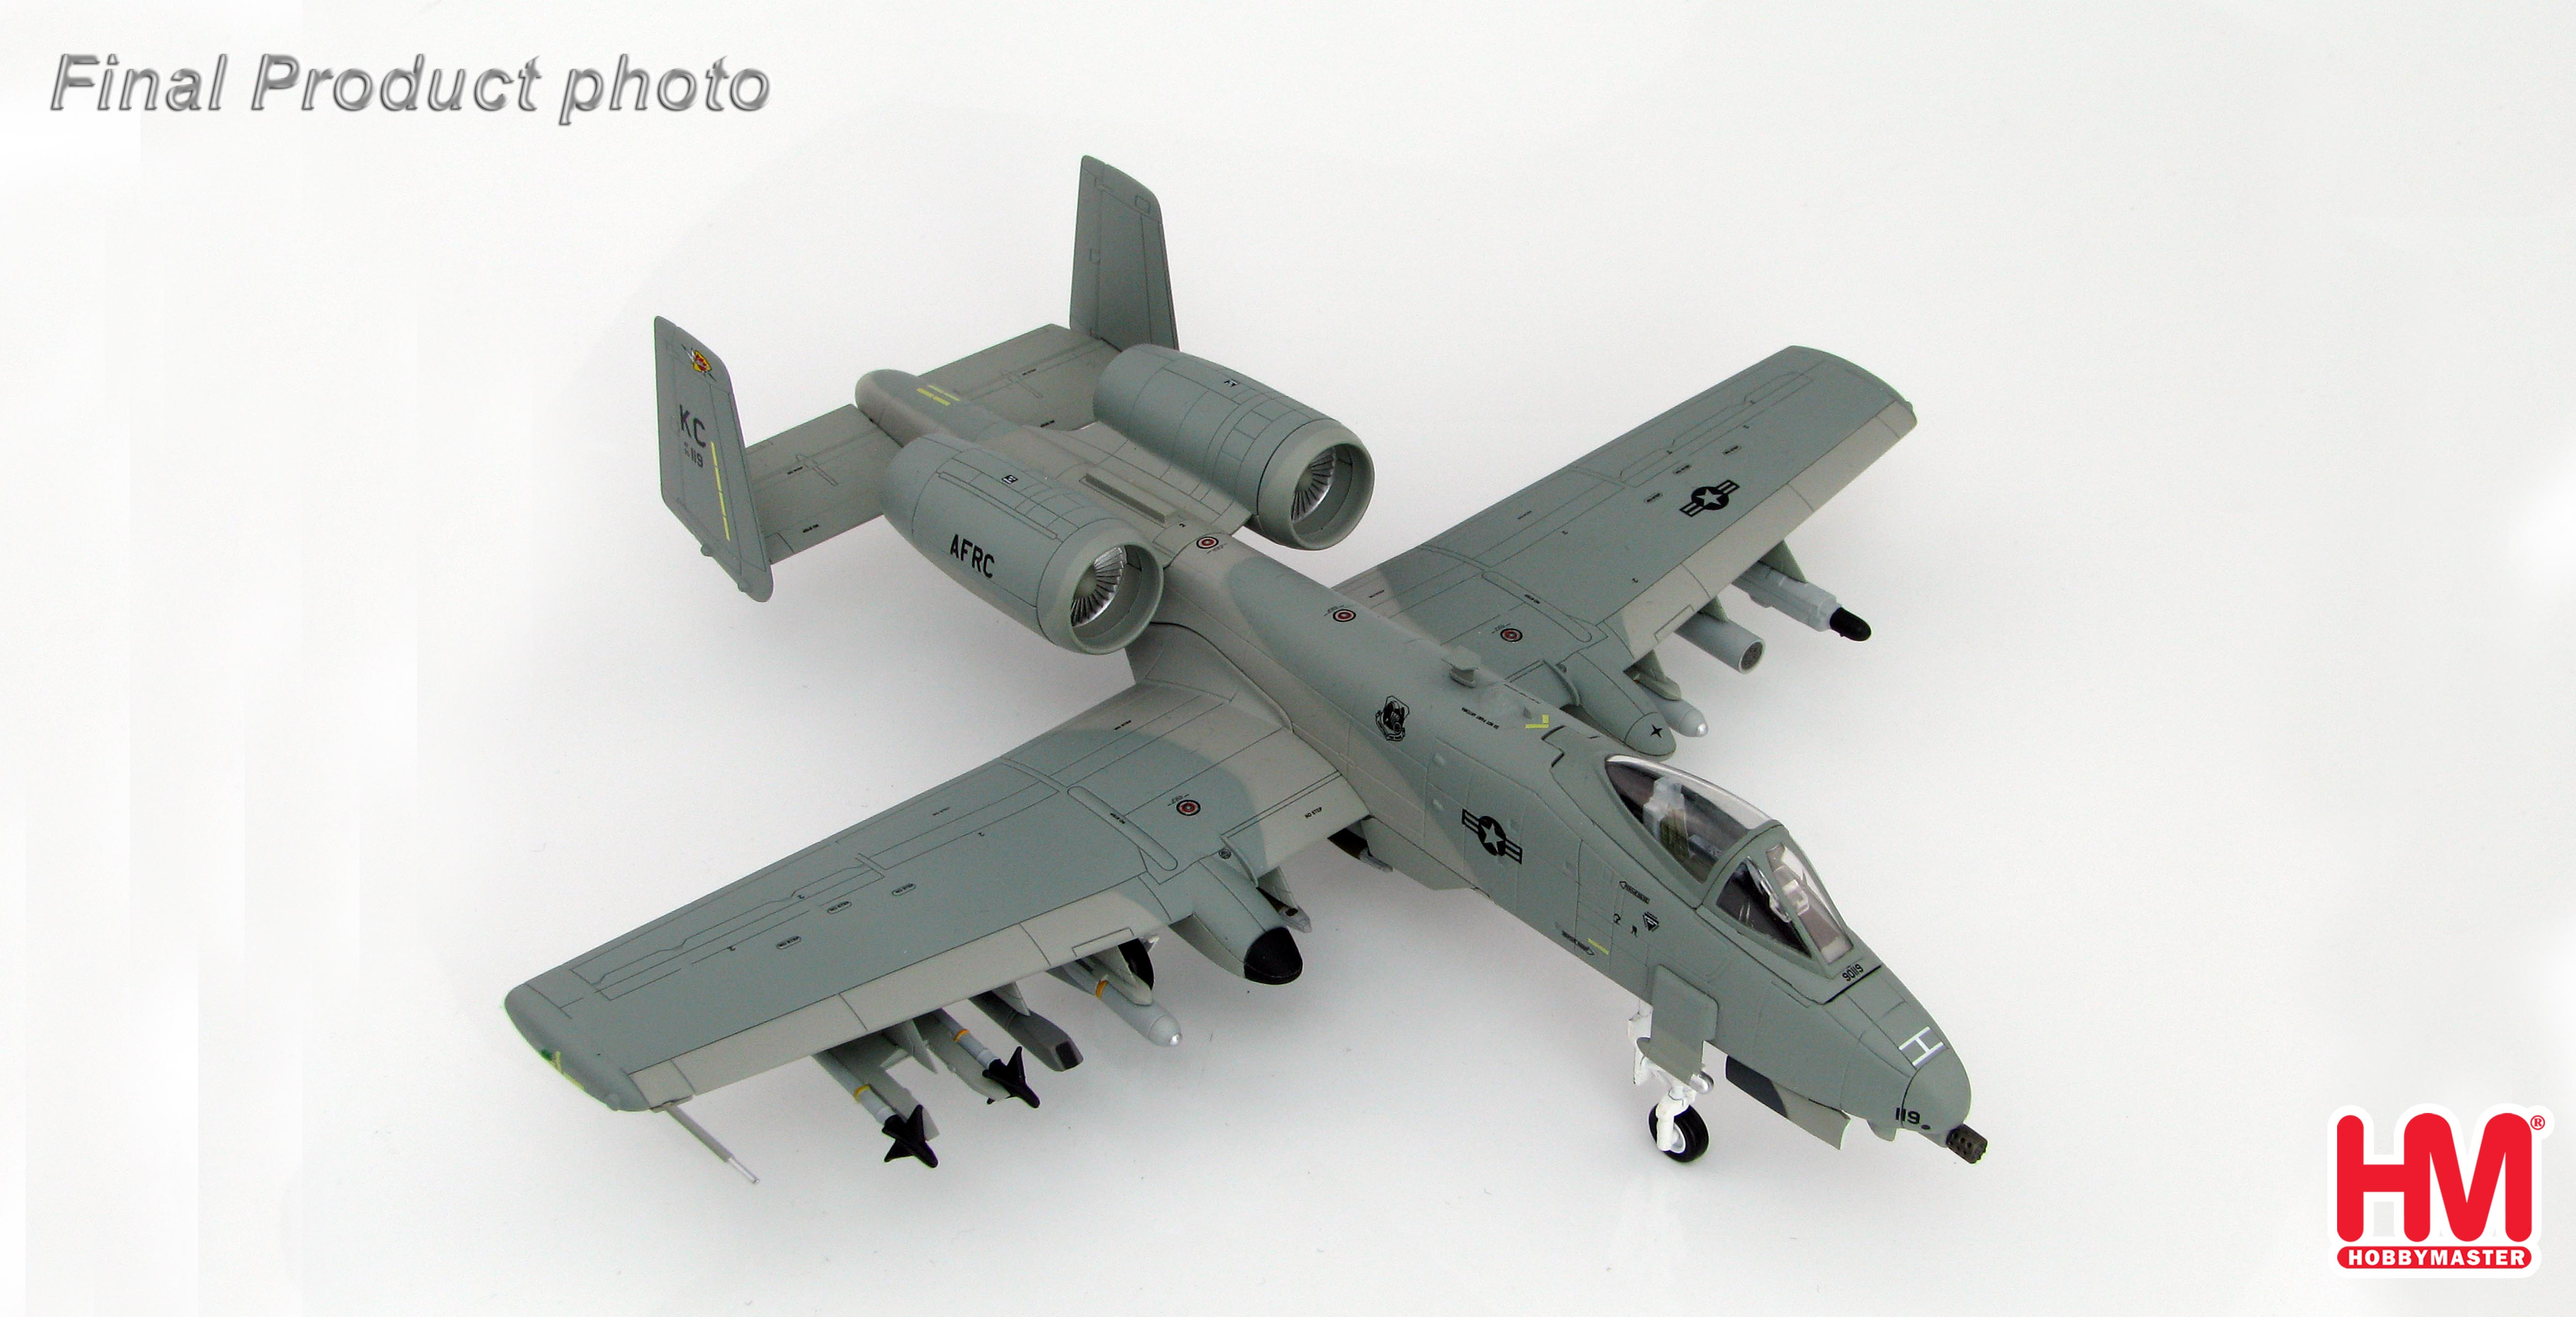 Hobby Master 1/72 scale Air Power Series Jet powered HA1323 - A-10C